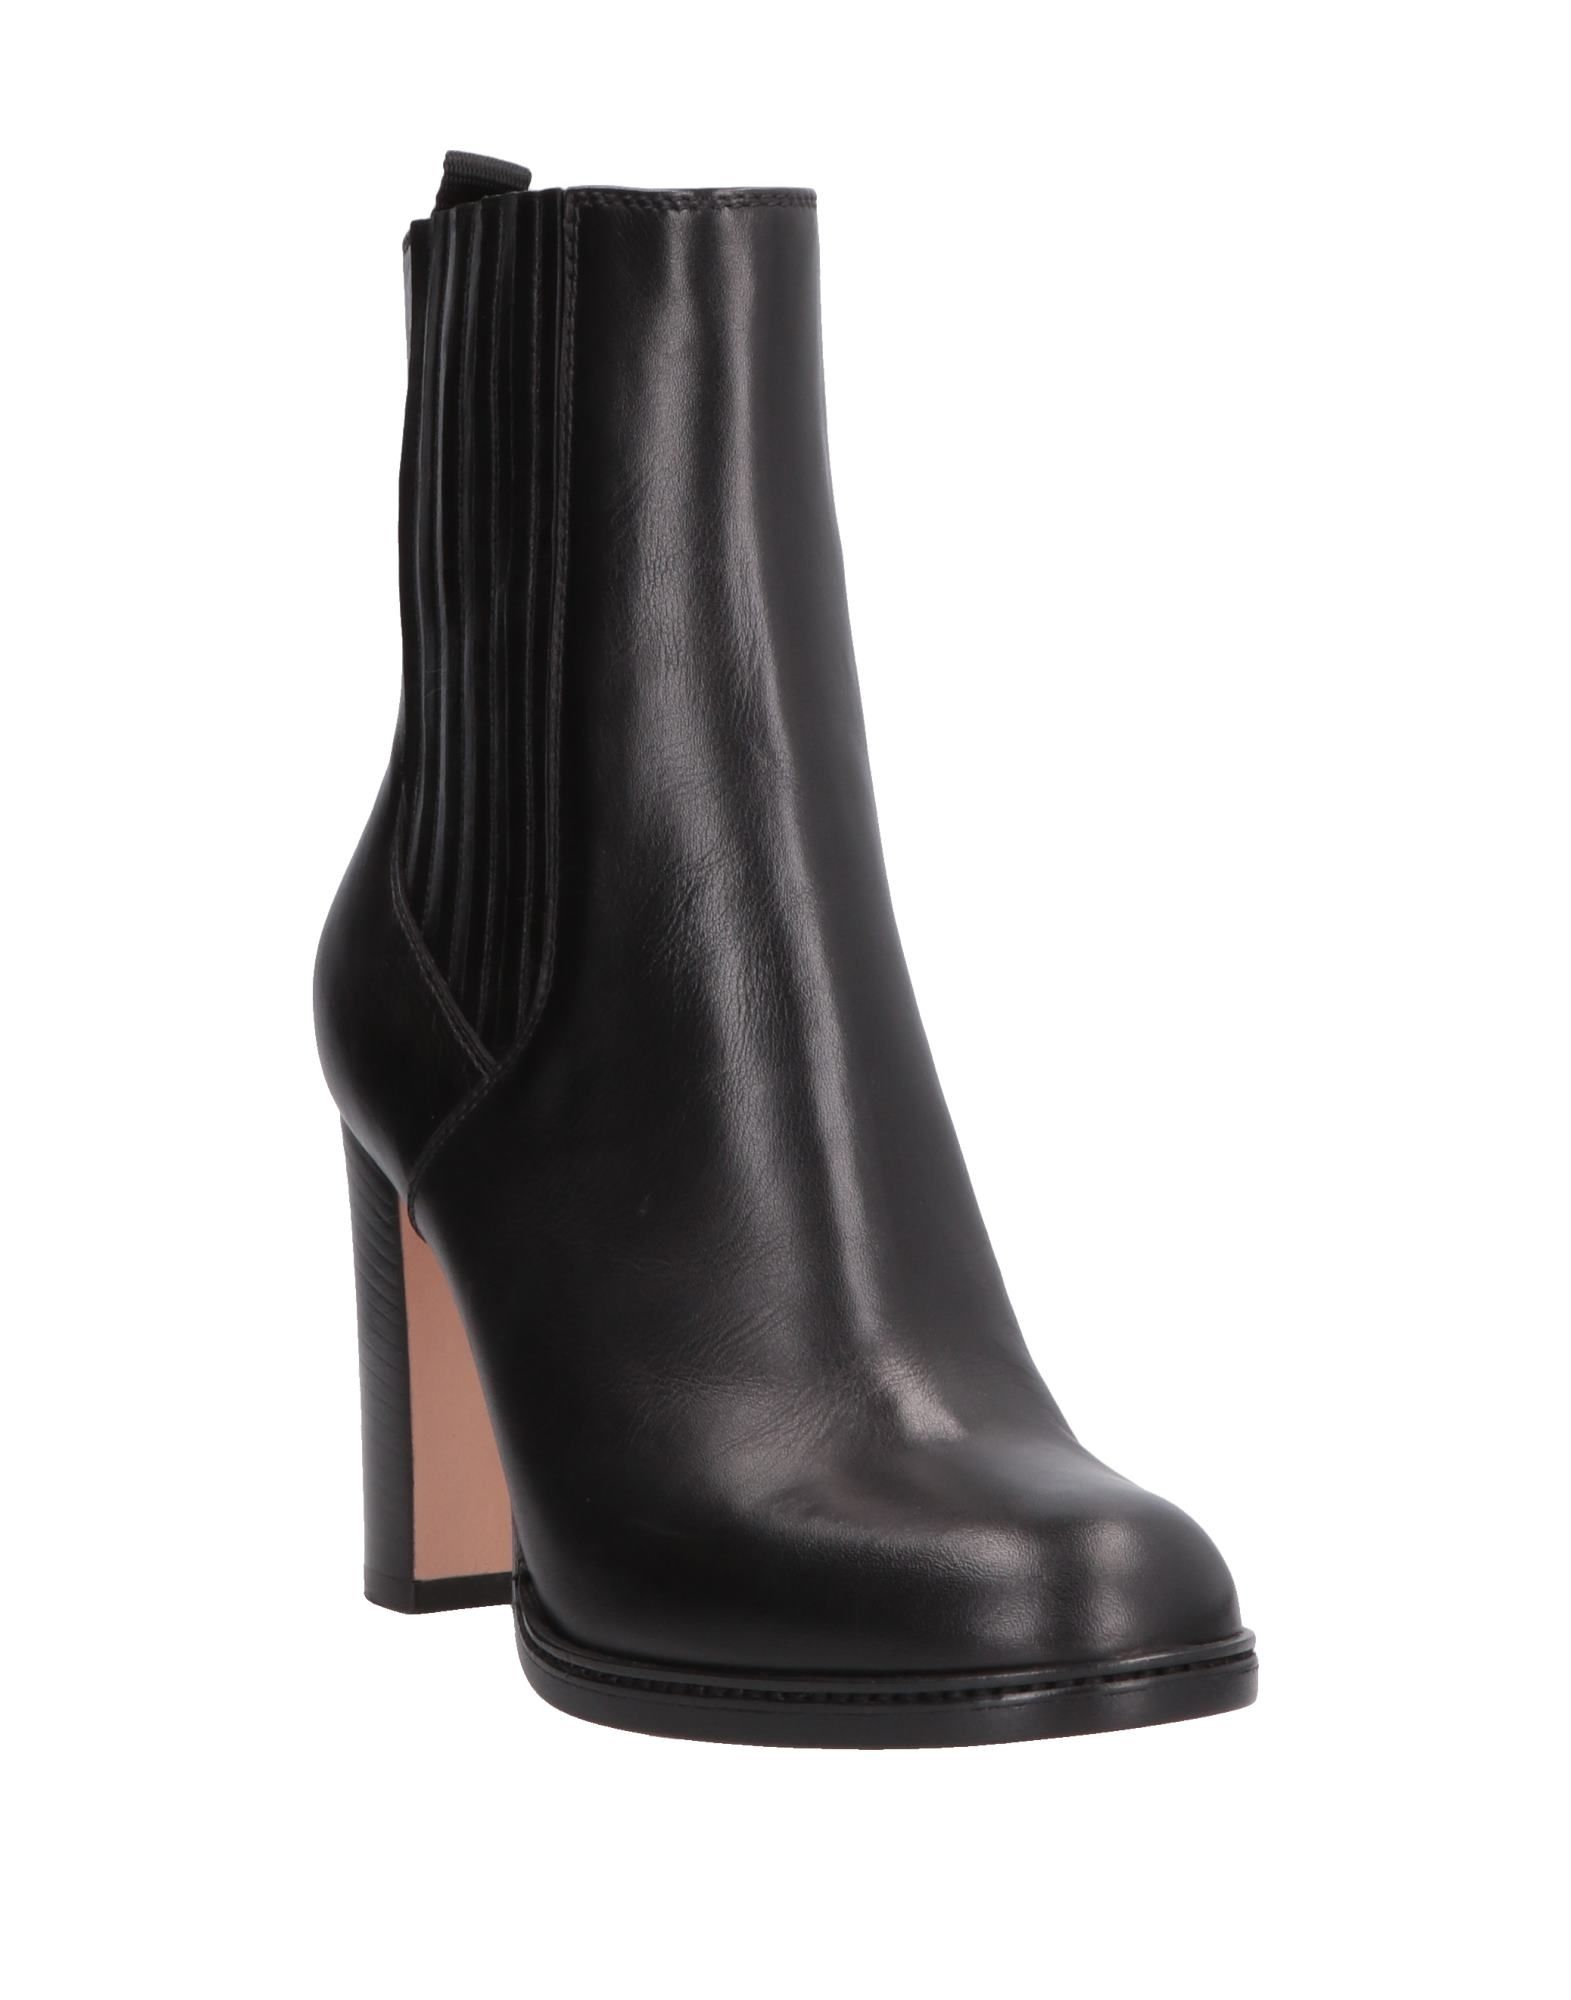 Gianvito Rossi Ankle Ankle Ankle Boot - Women Gianvito Rossi Ankle Boots online on  United Kingdom - 11556305XQ c1b1cb